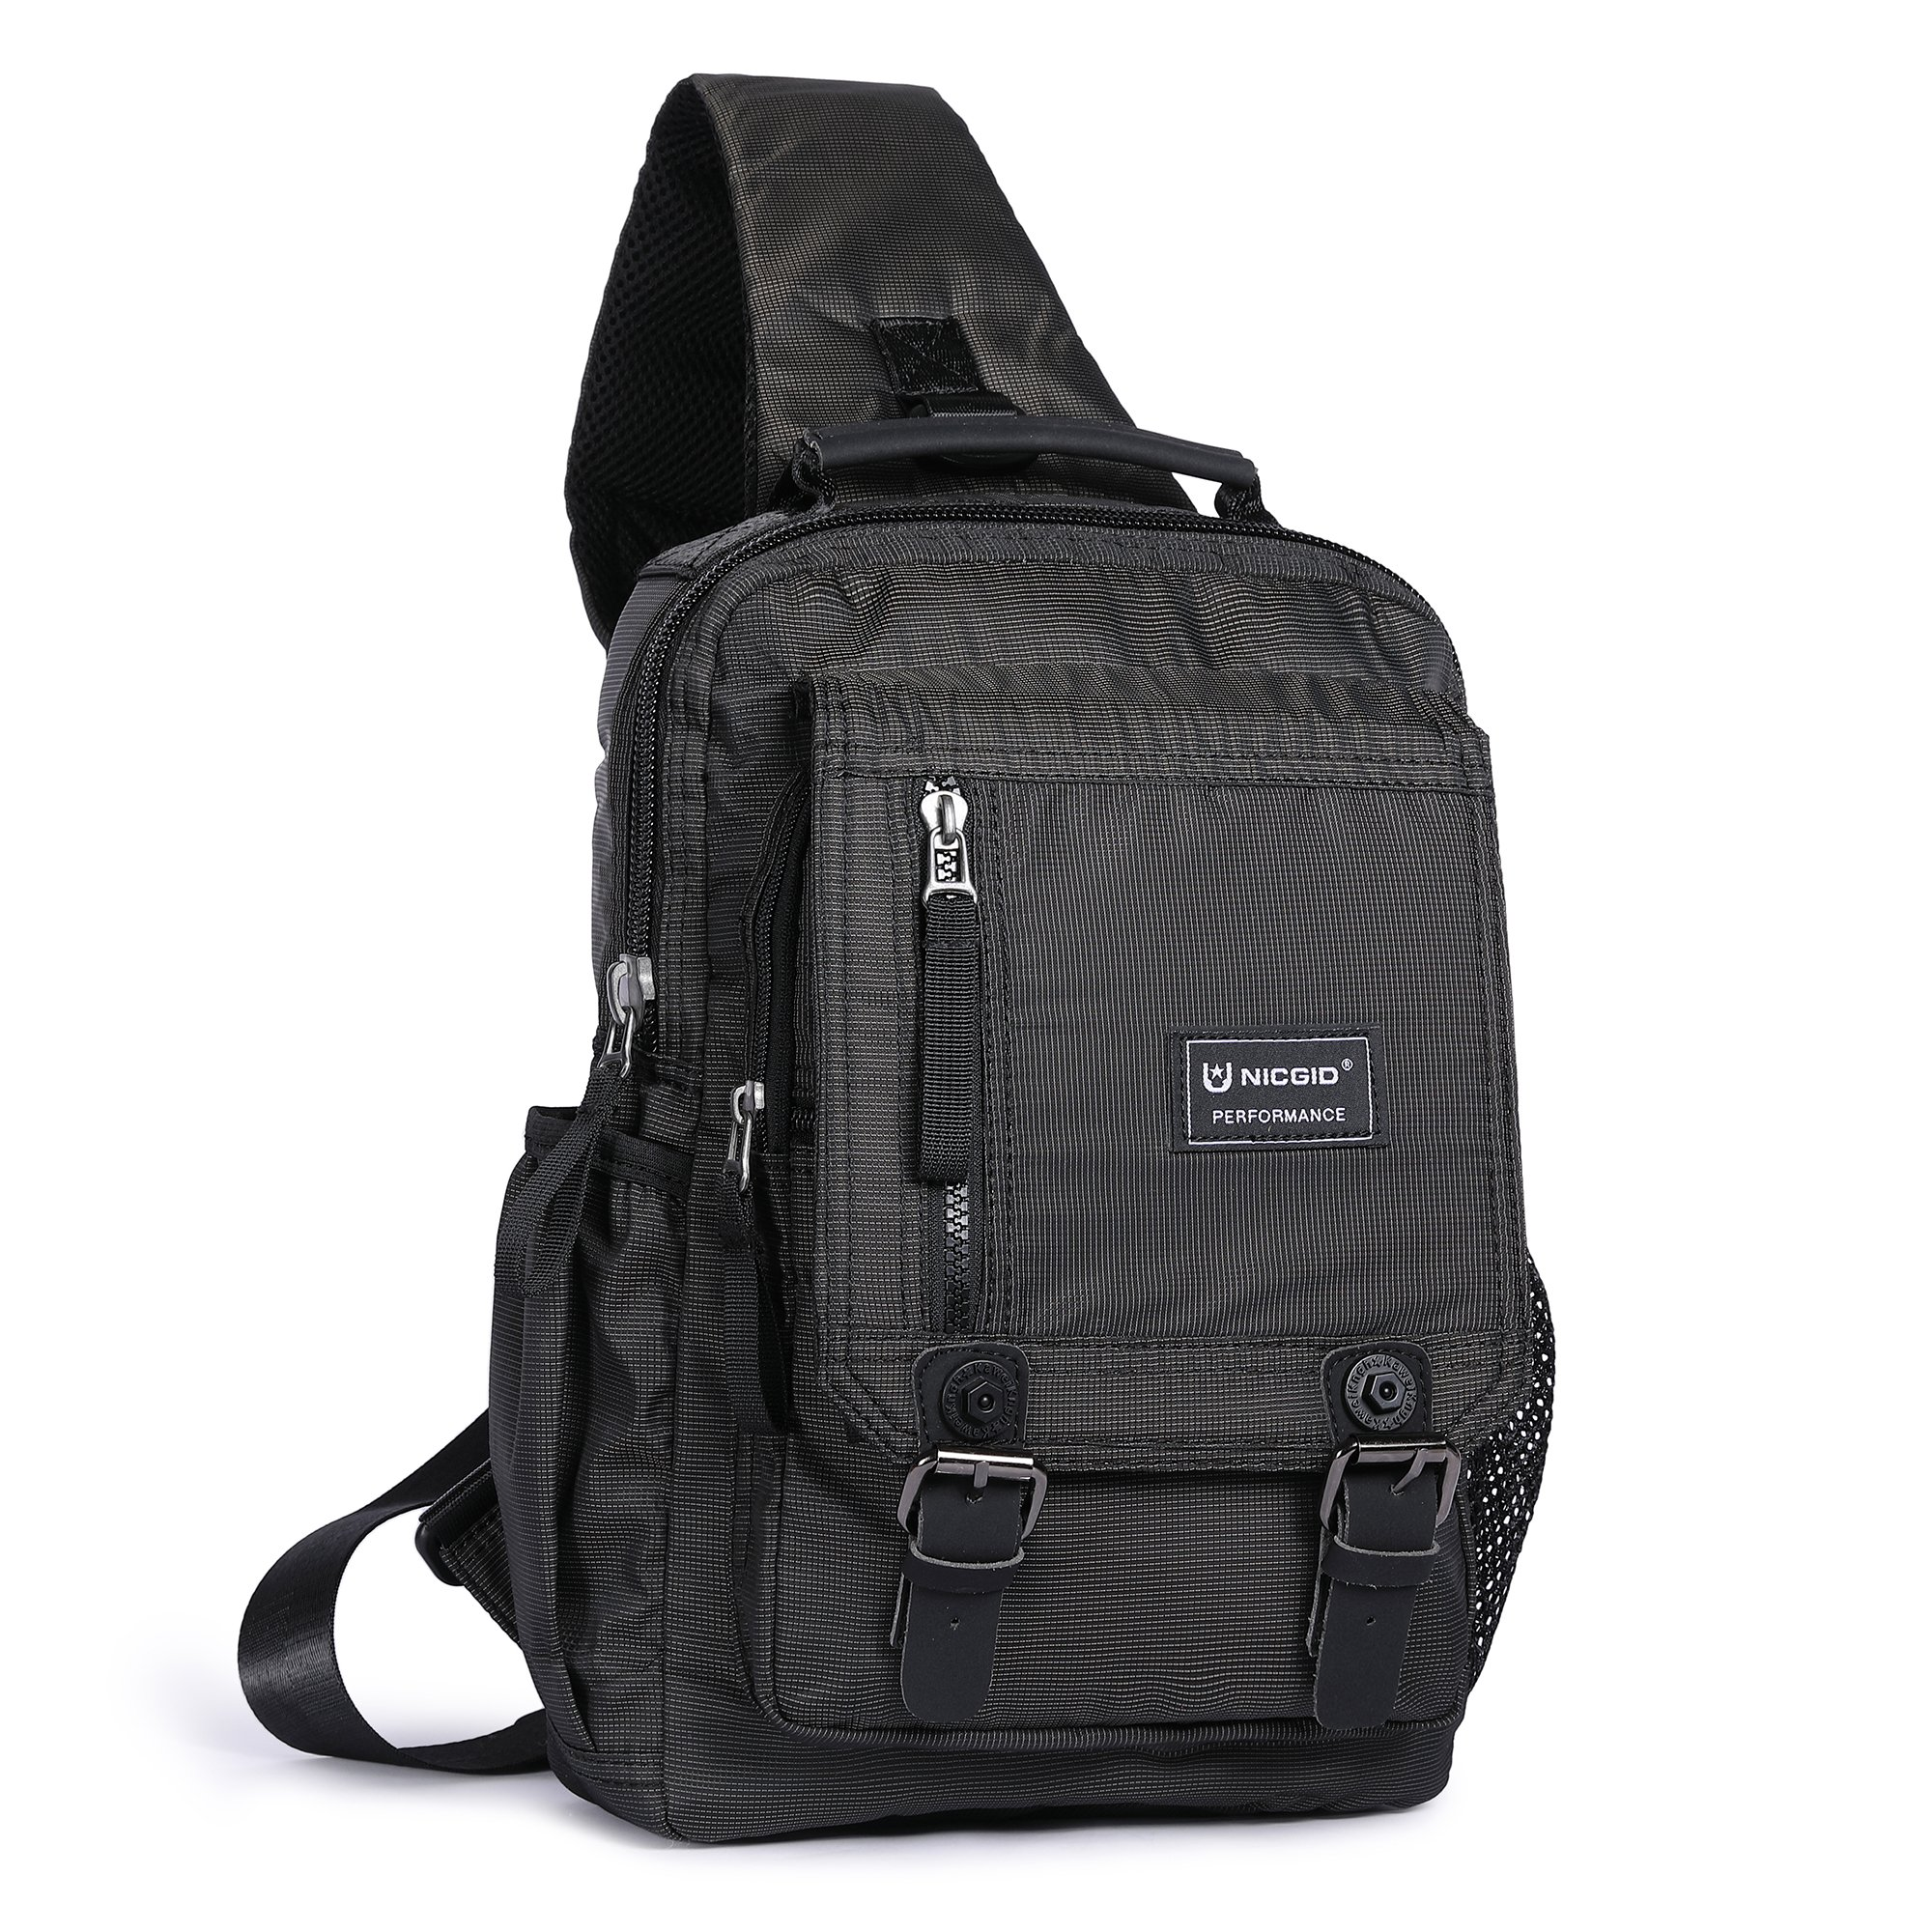 Sling Bag Cross Body Shoulder Backpack, Messenger Shoulder Bag Travel Chest Bag Outdoor Sport Pack Men Women (Black)